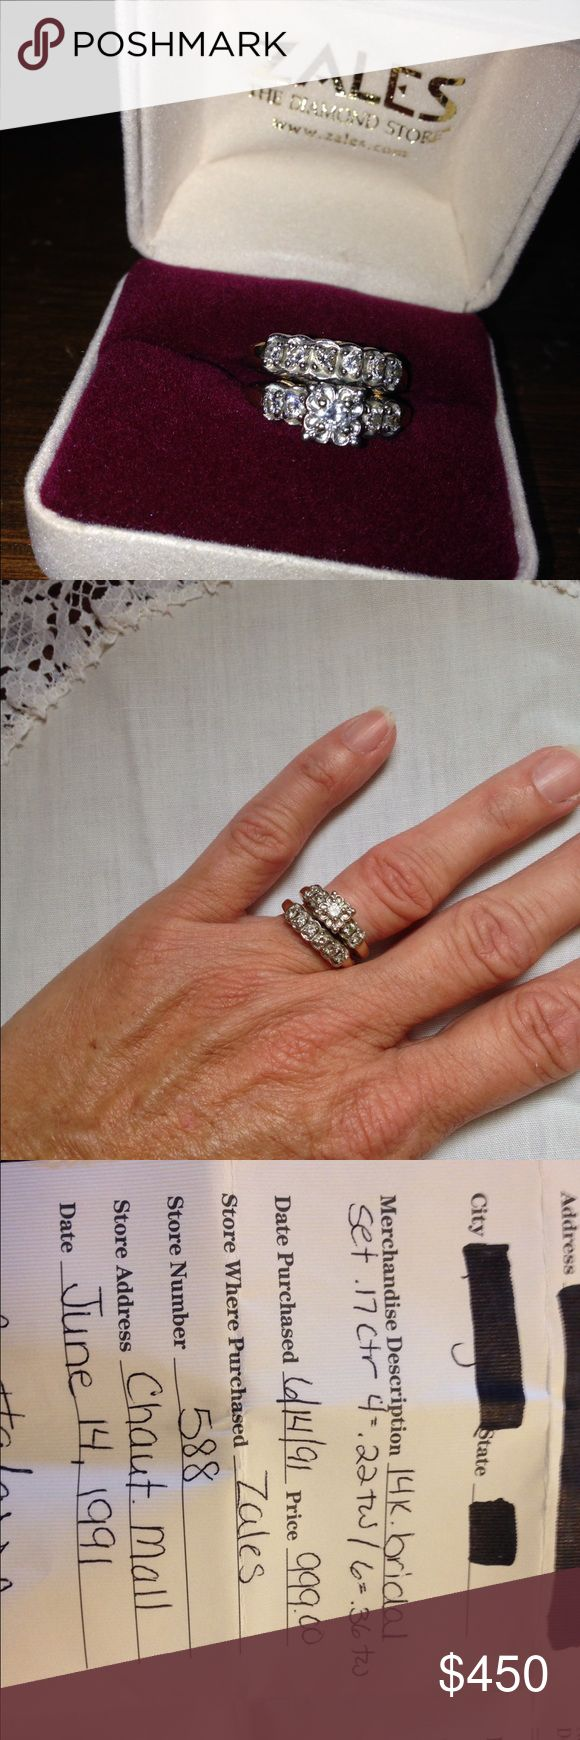 14k bridal set Beautiful.  From Zales.  Only worn 6 months. Zales Jewelry Rings